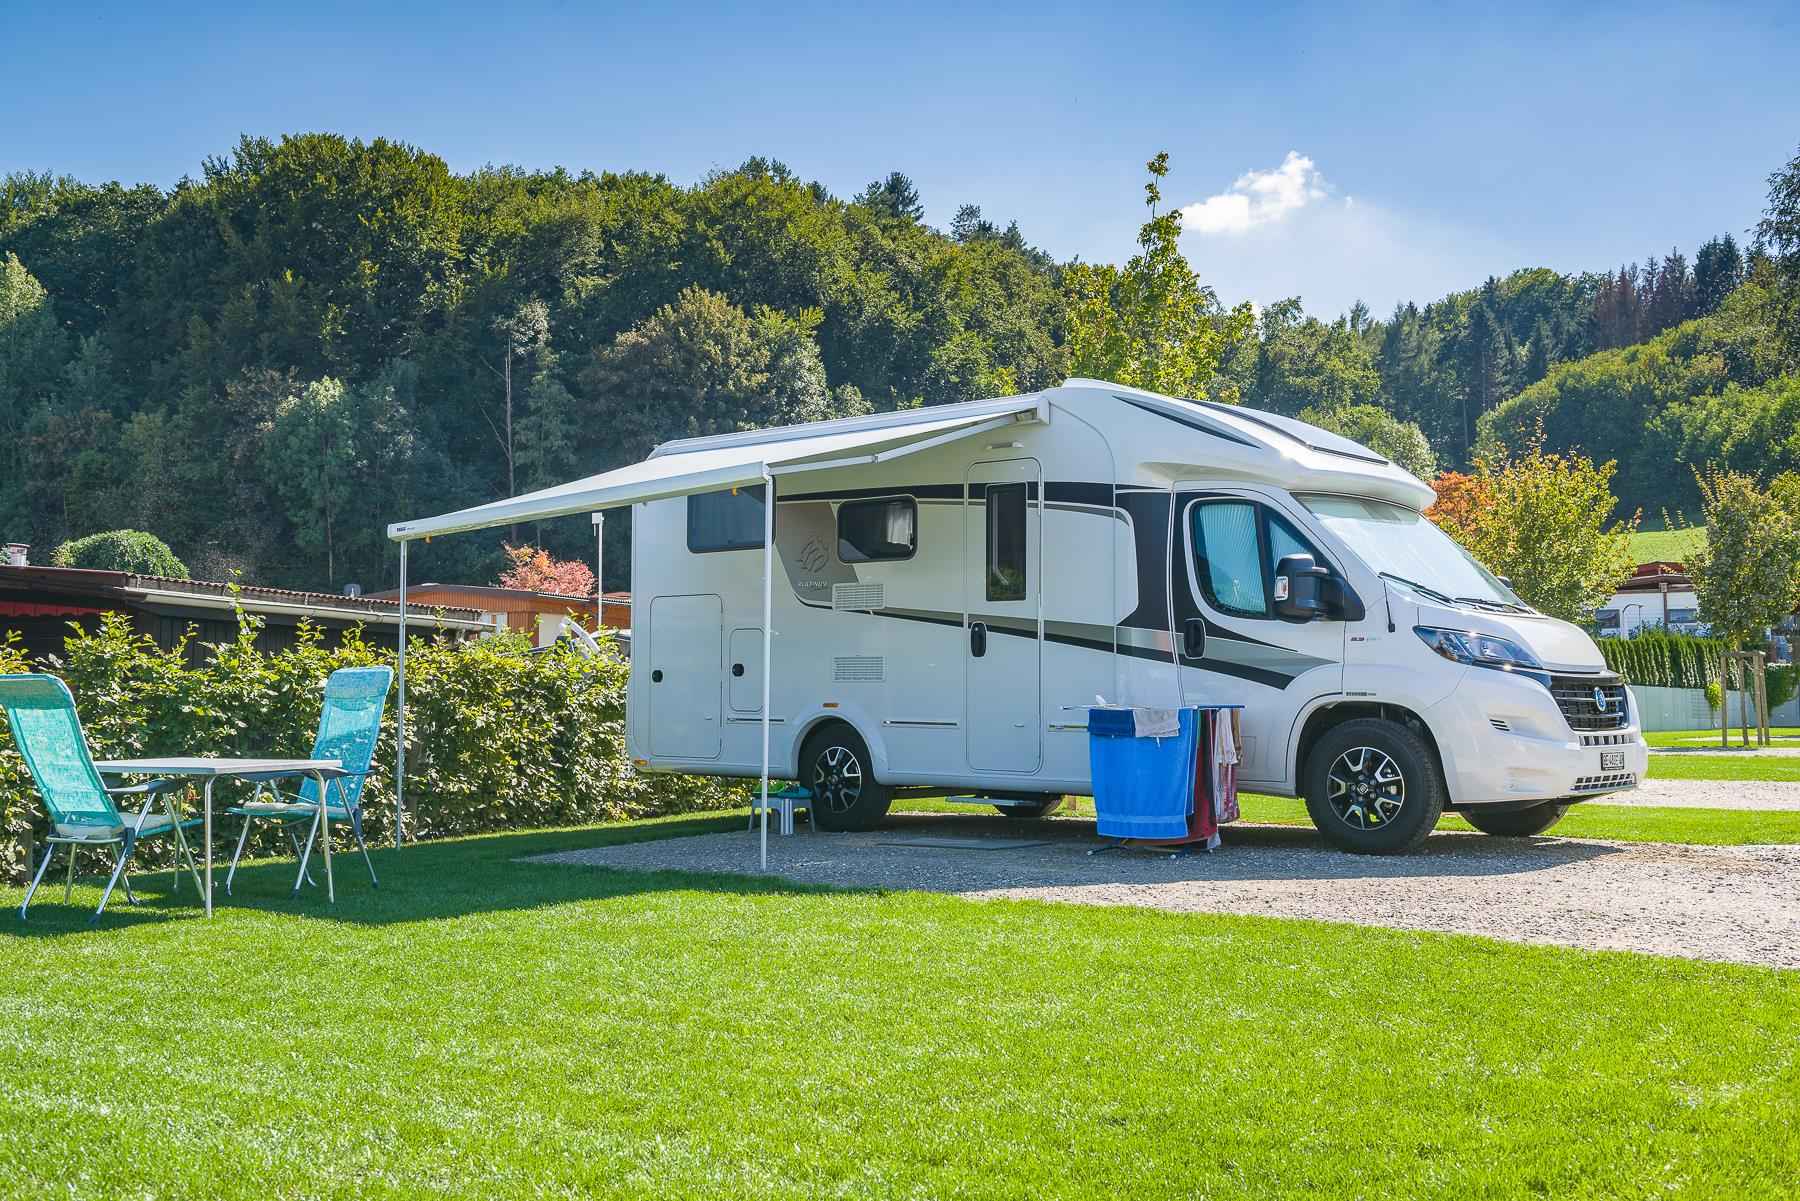 Comfort pitch >120sqm (caravans and motorhomes only)